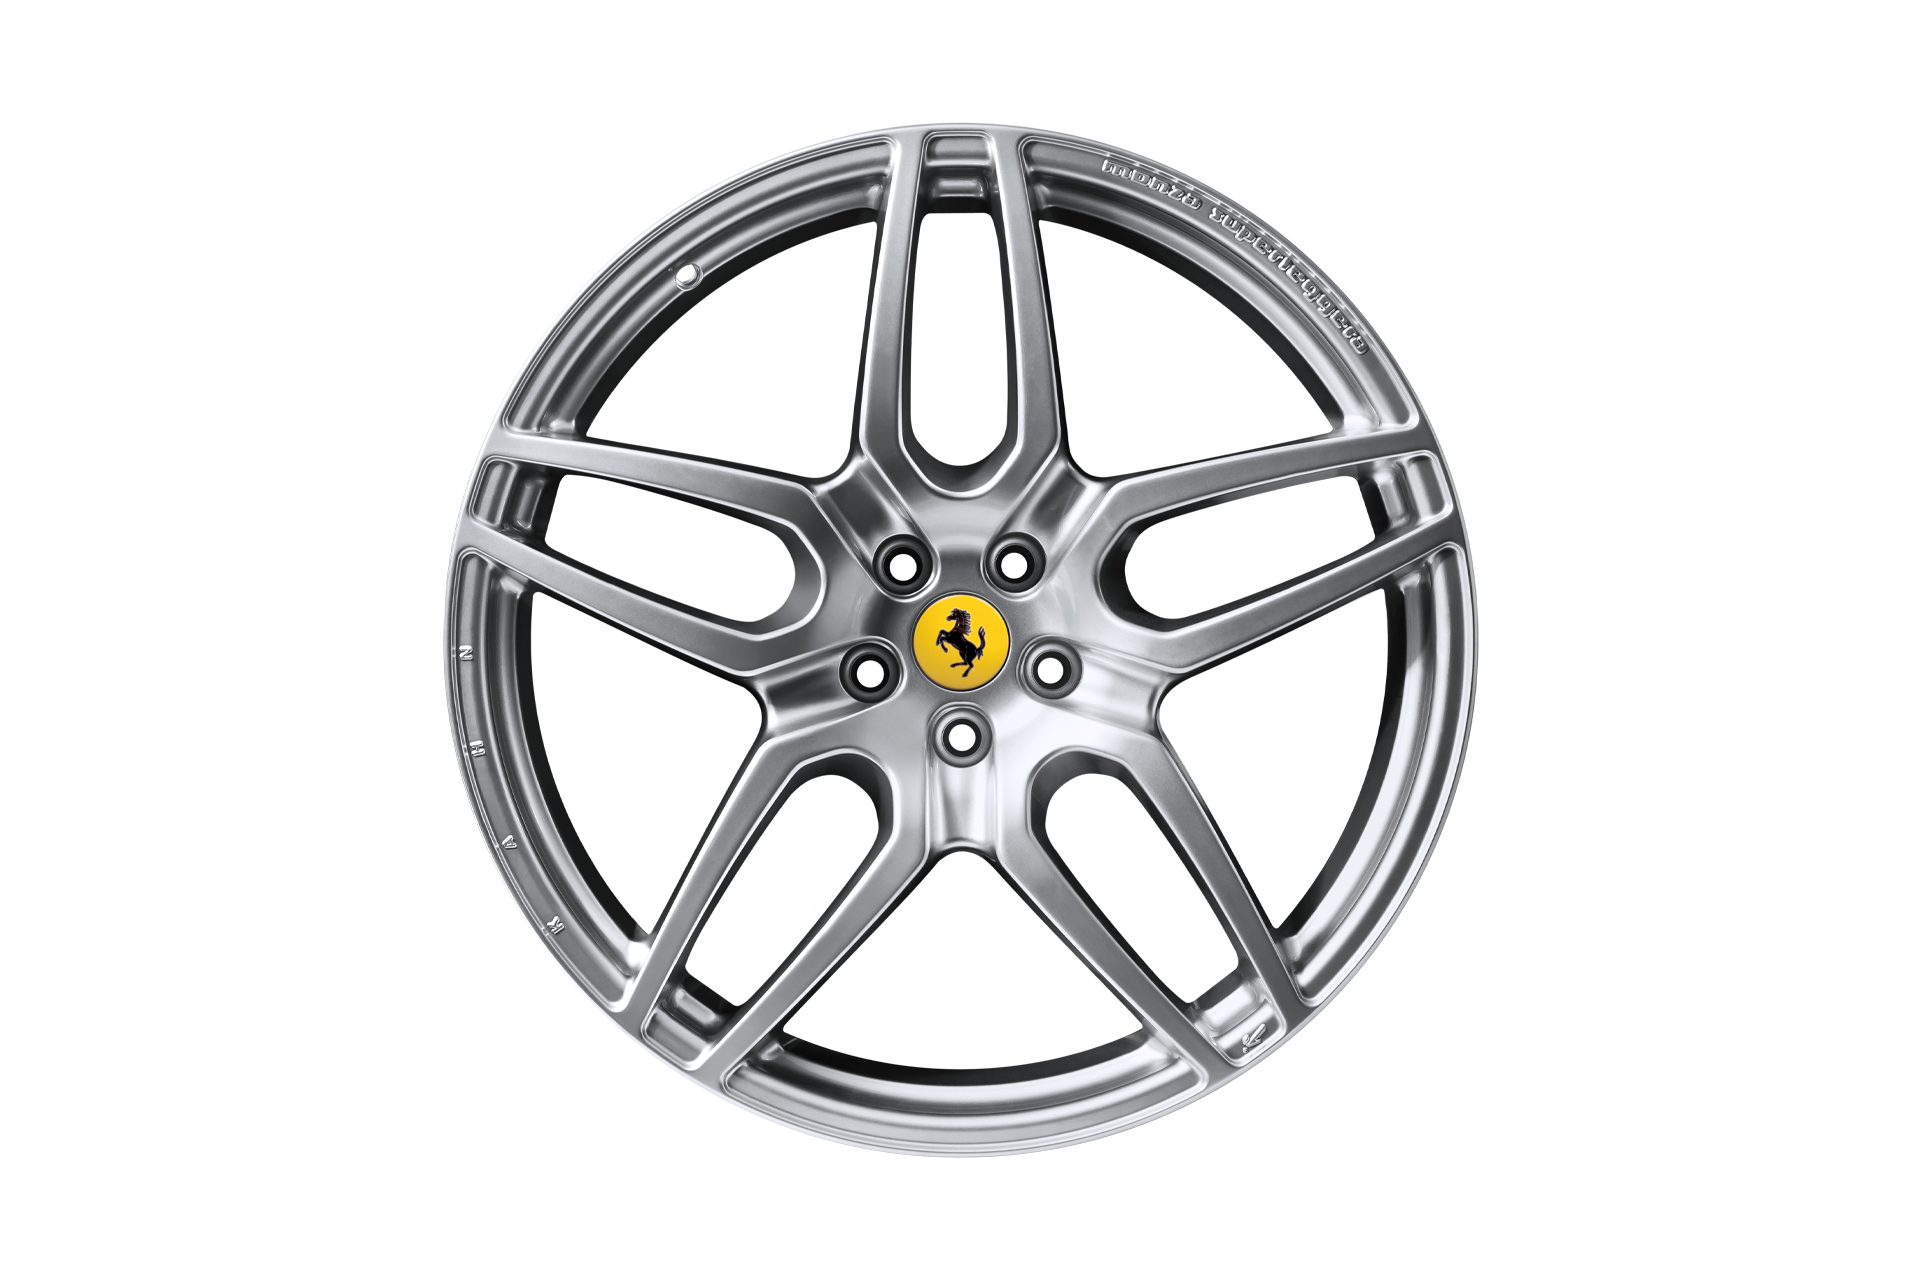 Ferrari 456 Monza Superleggera Light Alloy Wheels by Kahn - Image 4113